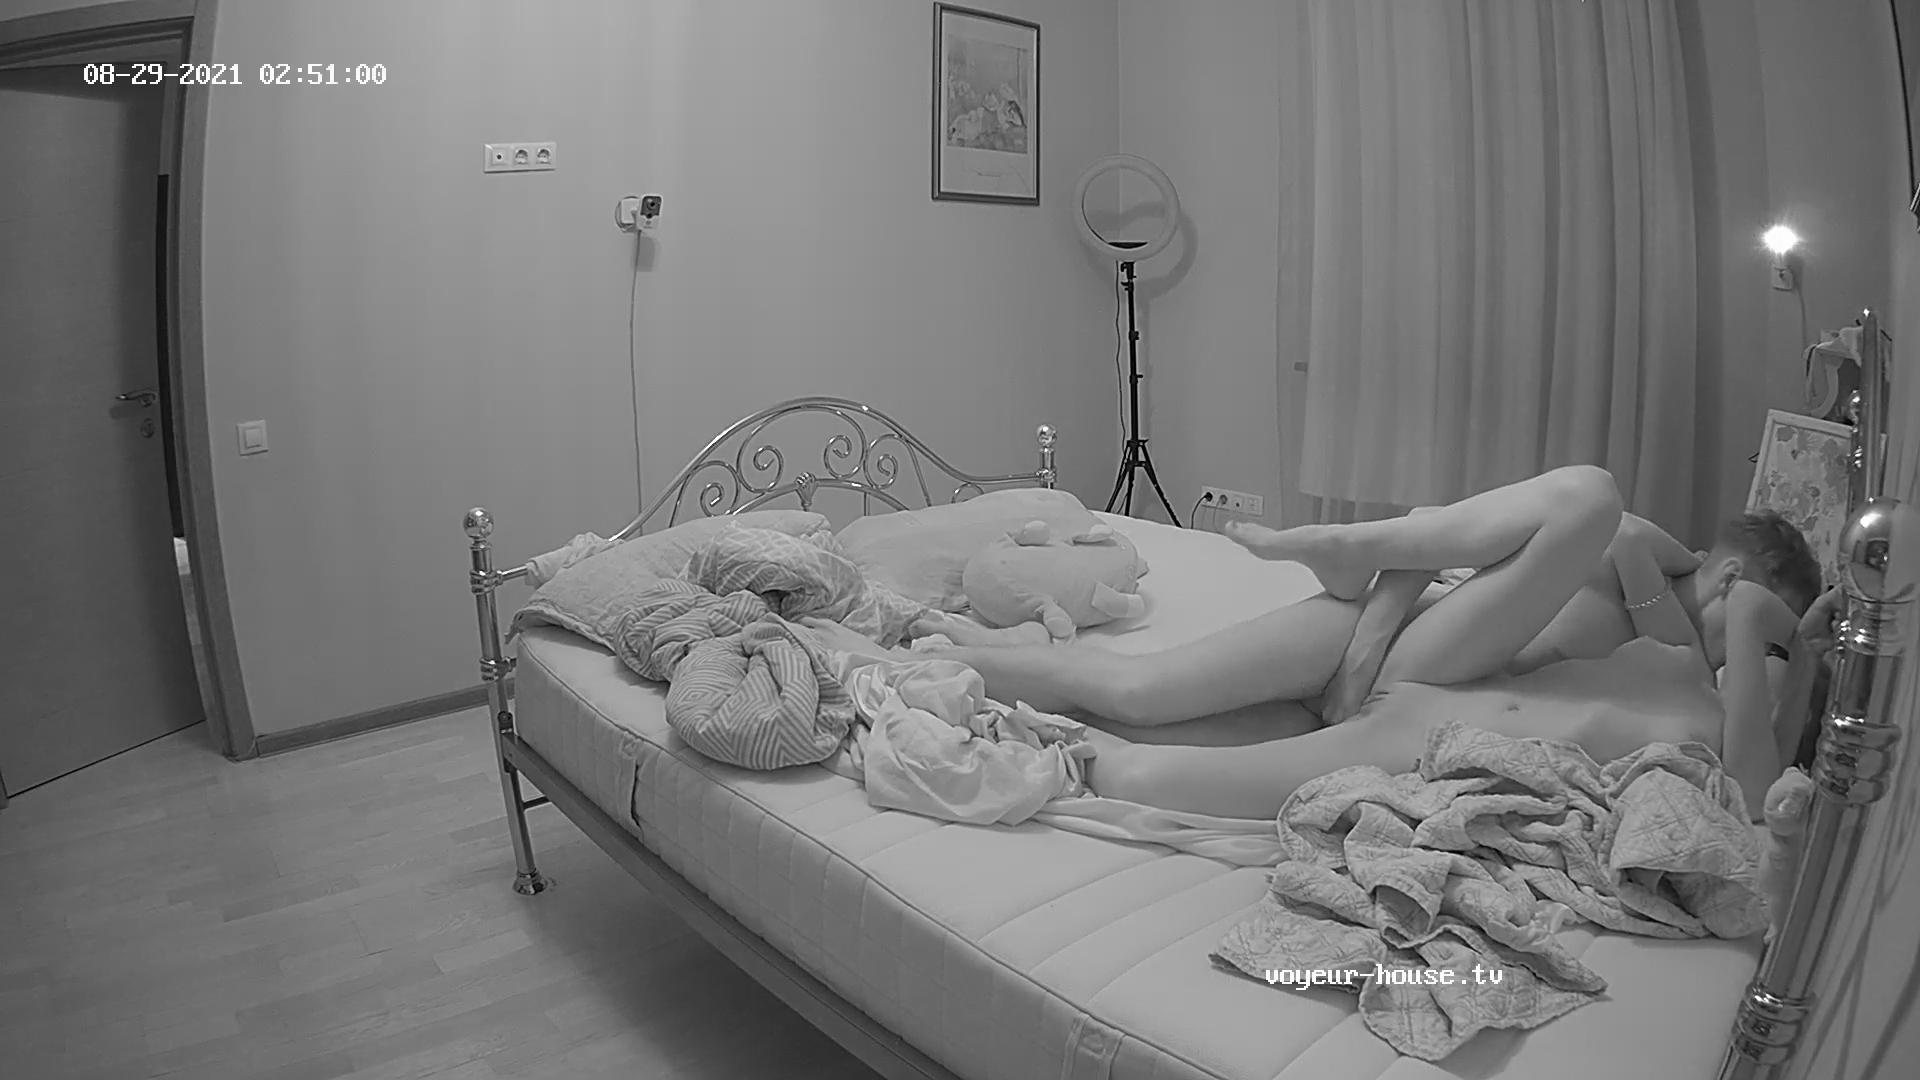 Robien Milana Guest girl threesome rd2 Aug 29 2021